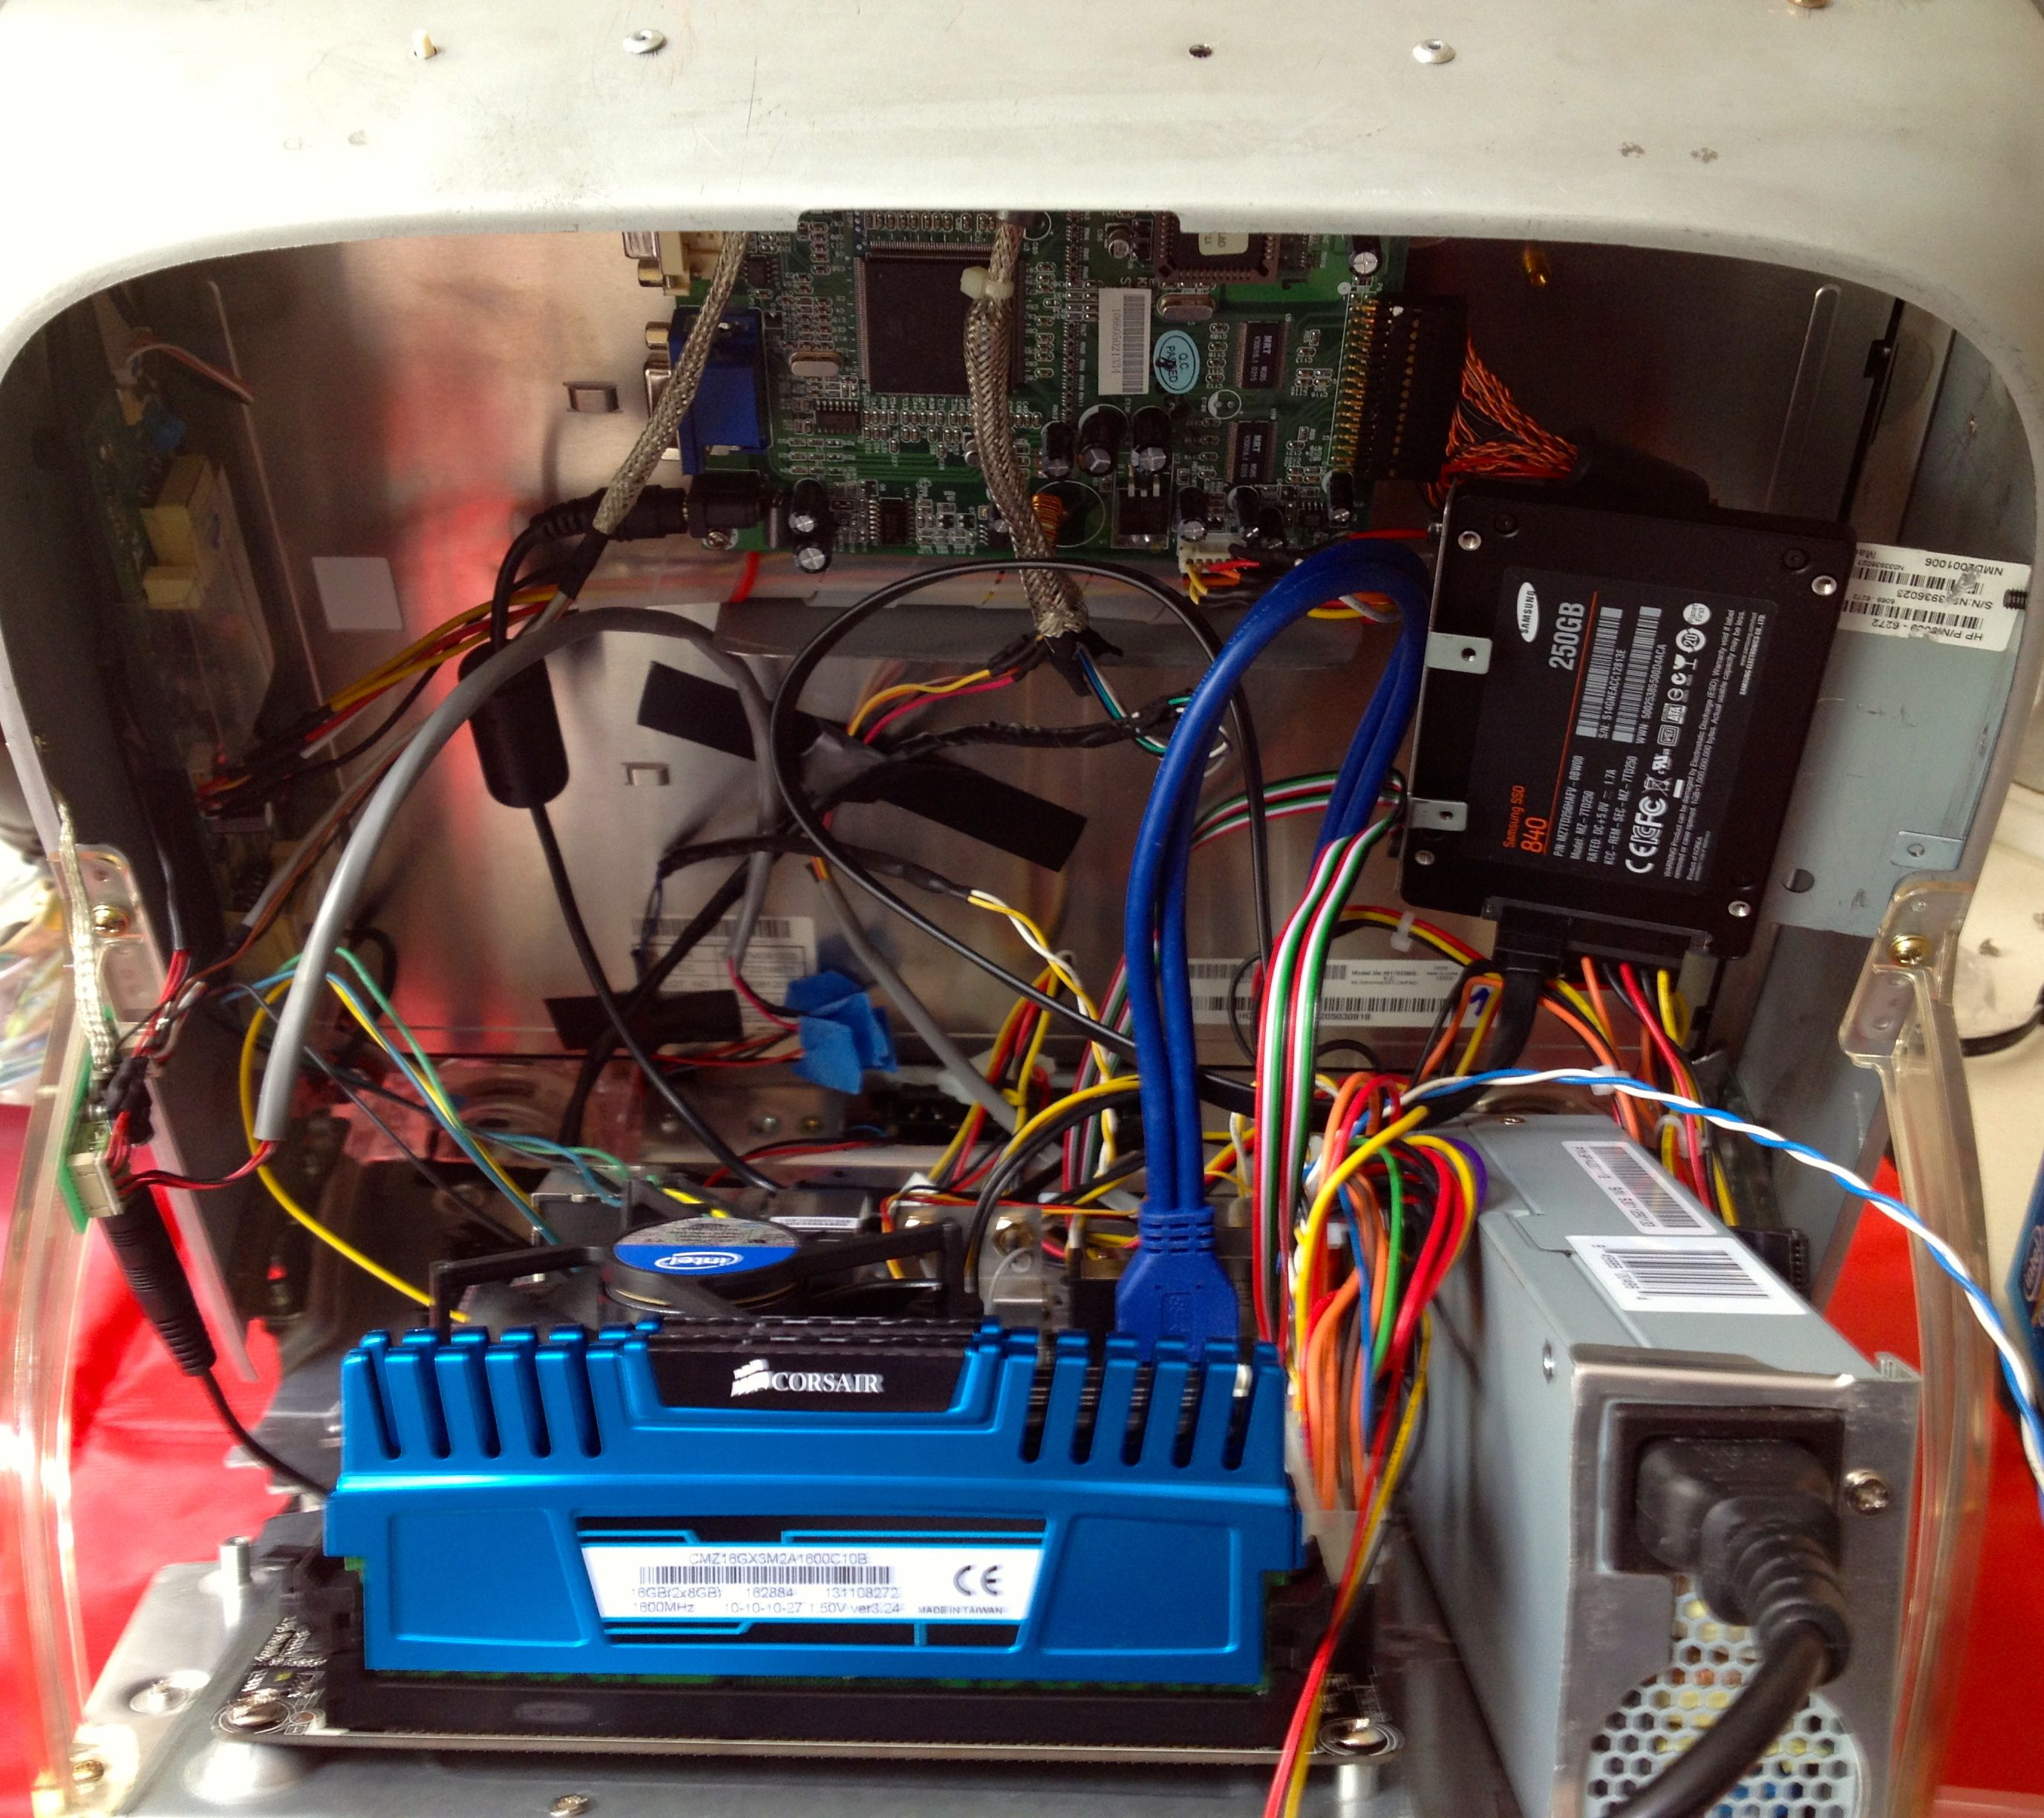 test fit of all internal components